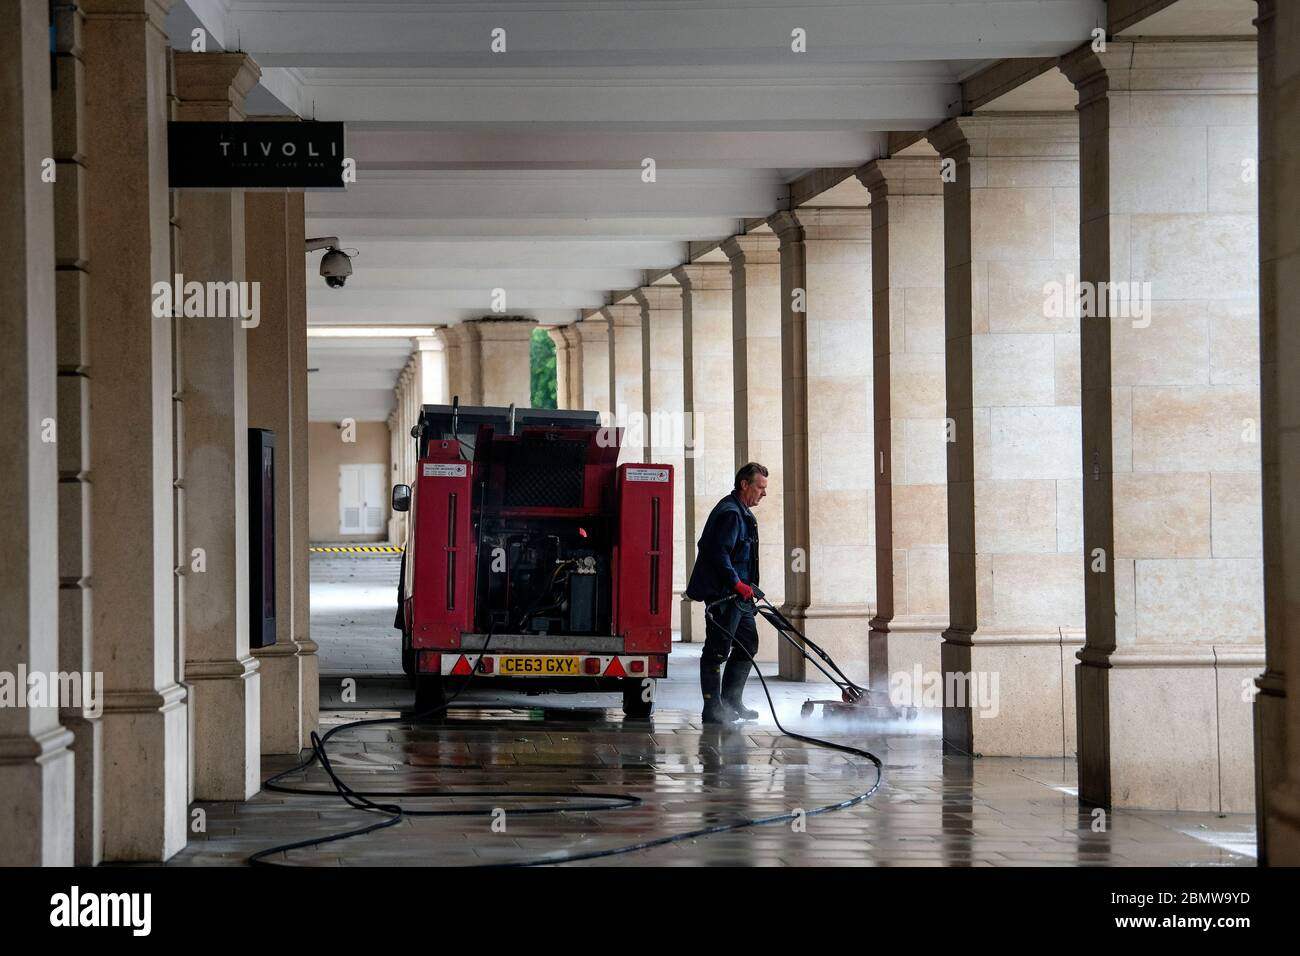 11.05.20. Coronavirus Pandemic, Bath, Somerset.  A worker cleans the streets in Bath, Somerset, as the UK government lockdown restrictions start to be Stock Photo